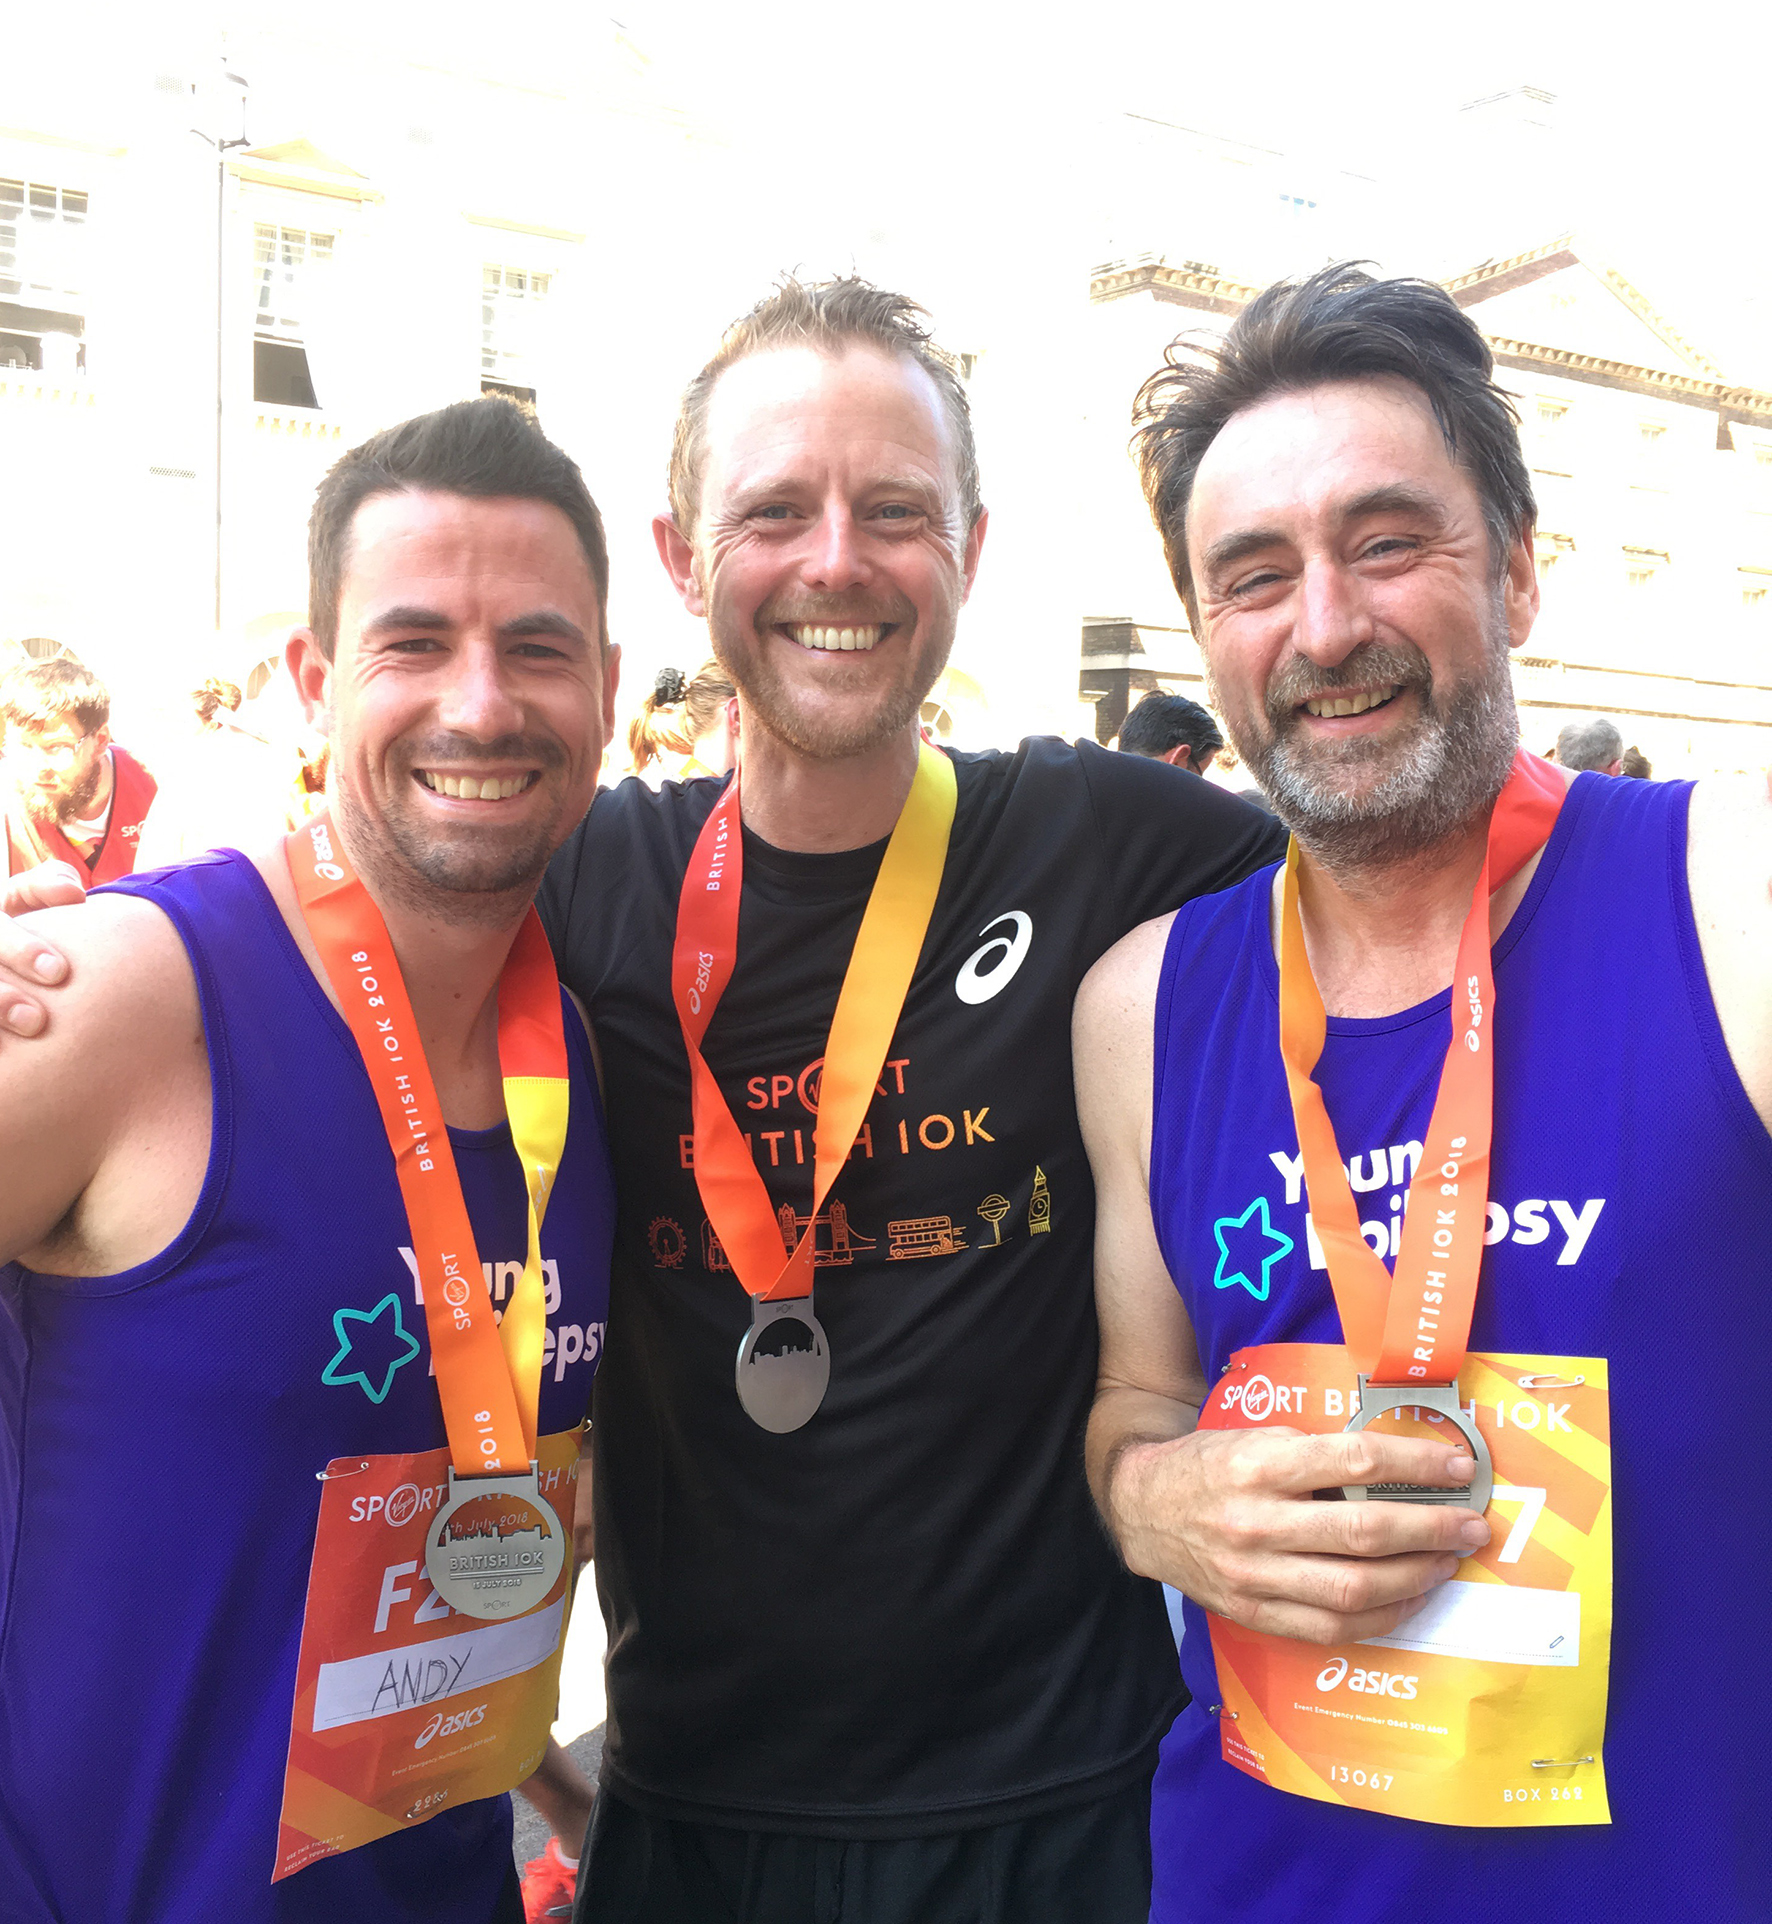 Abacus running team defy British 10k heat to help raise over £6,500 for Young Epilepsy